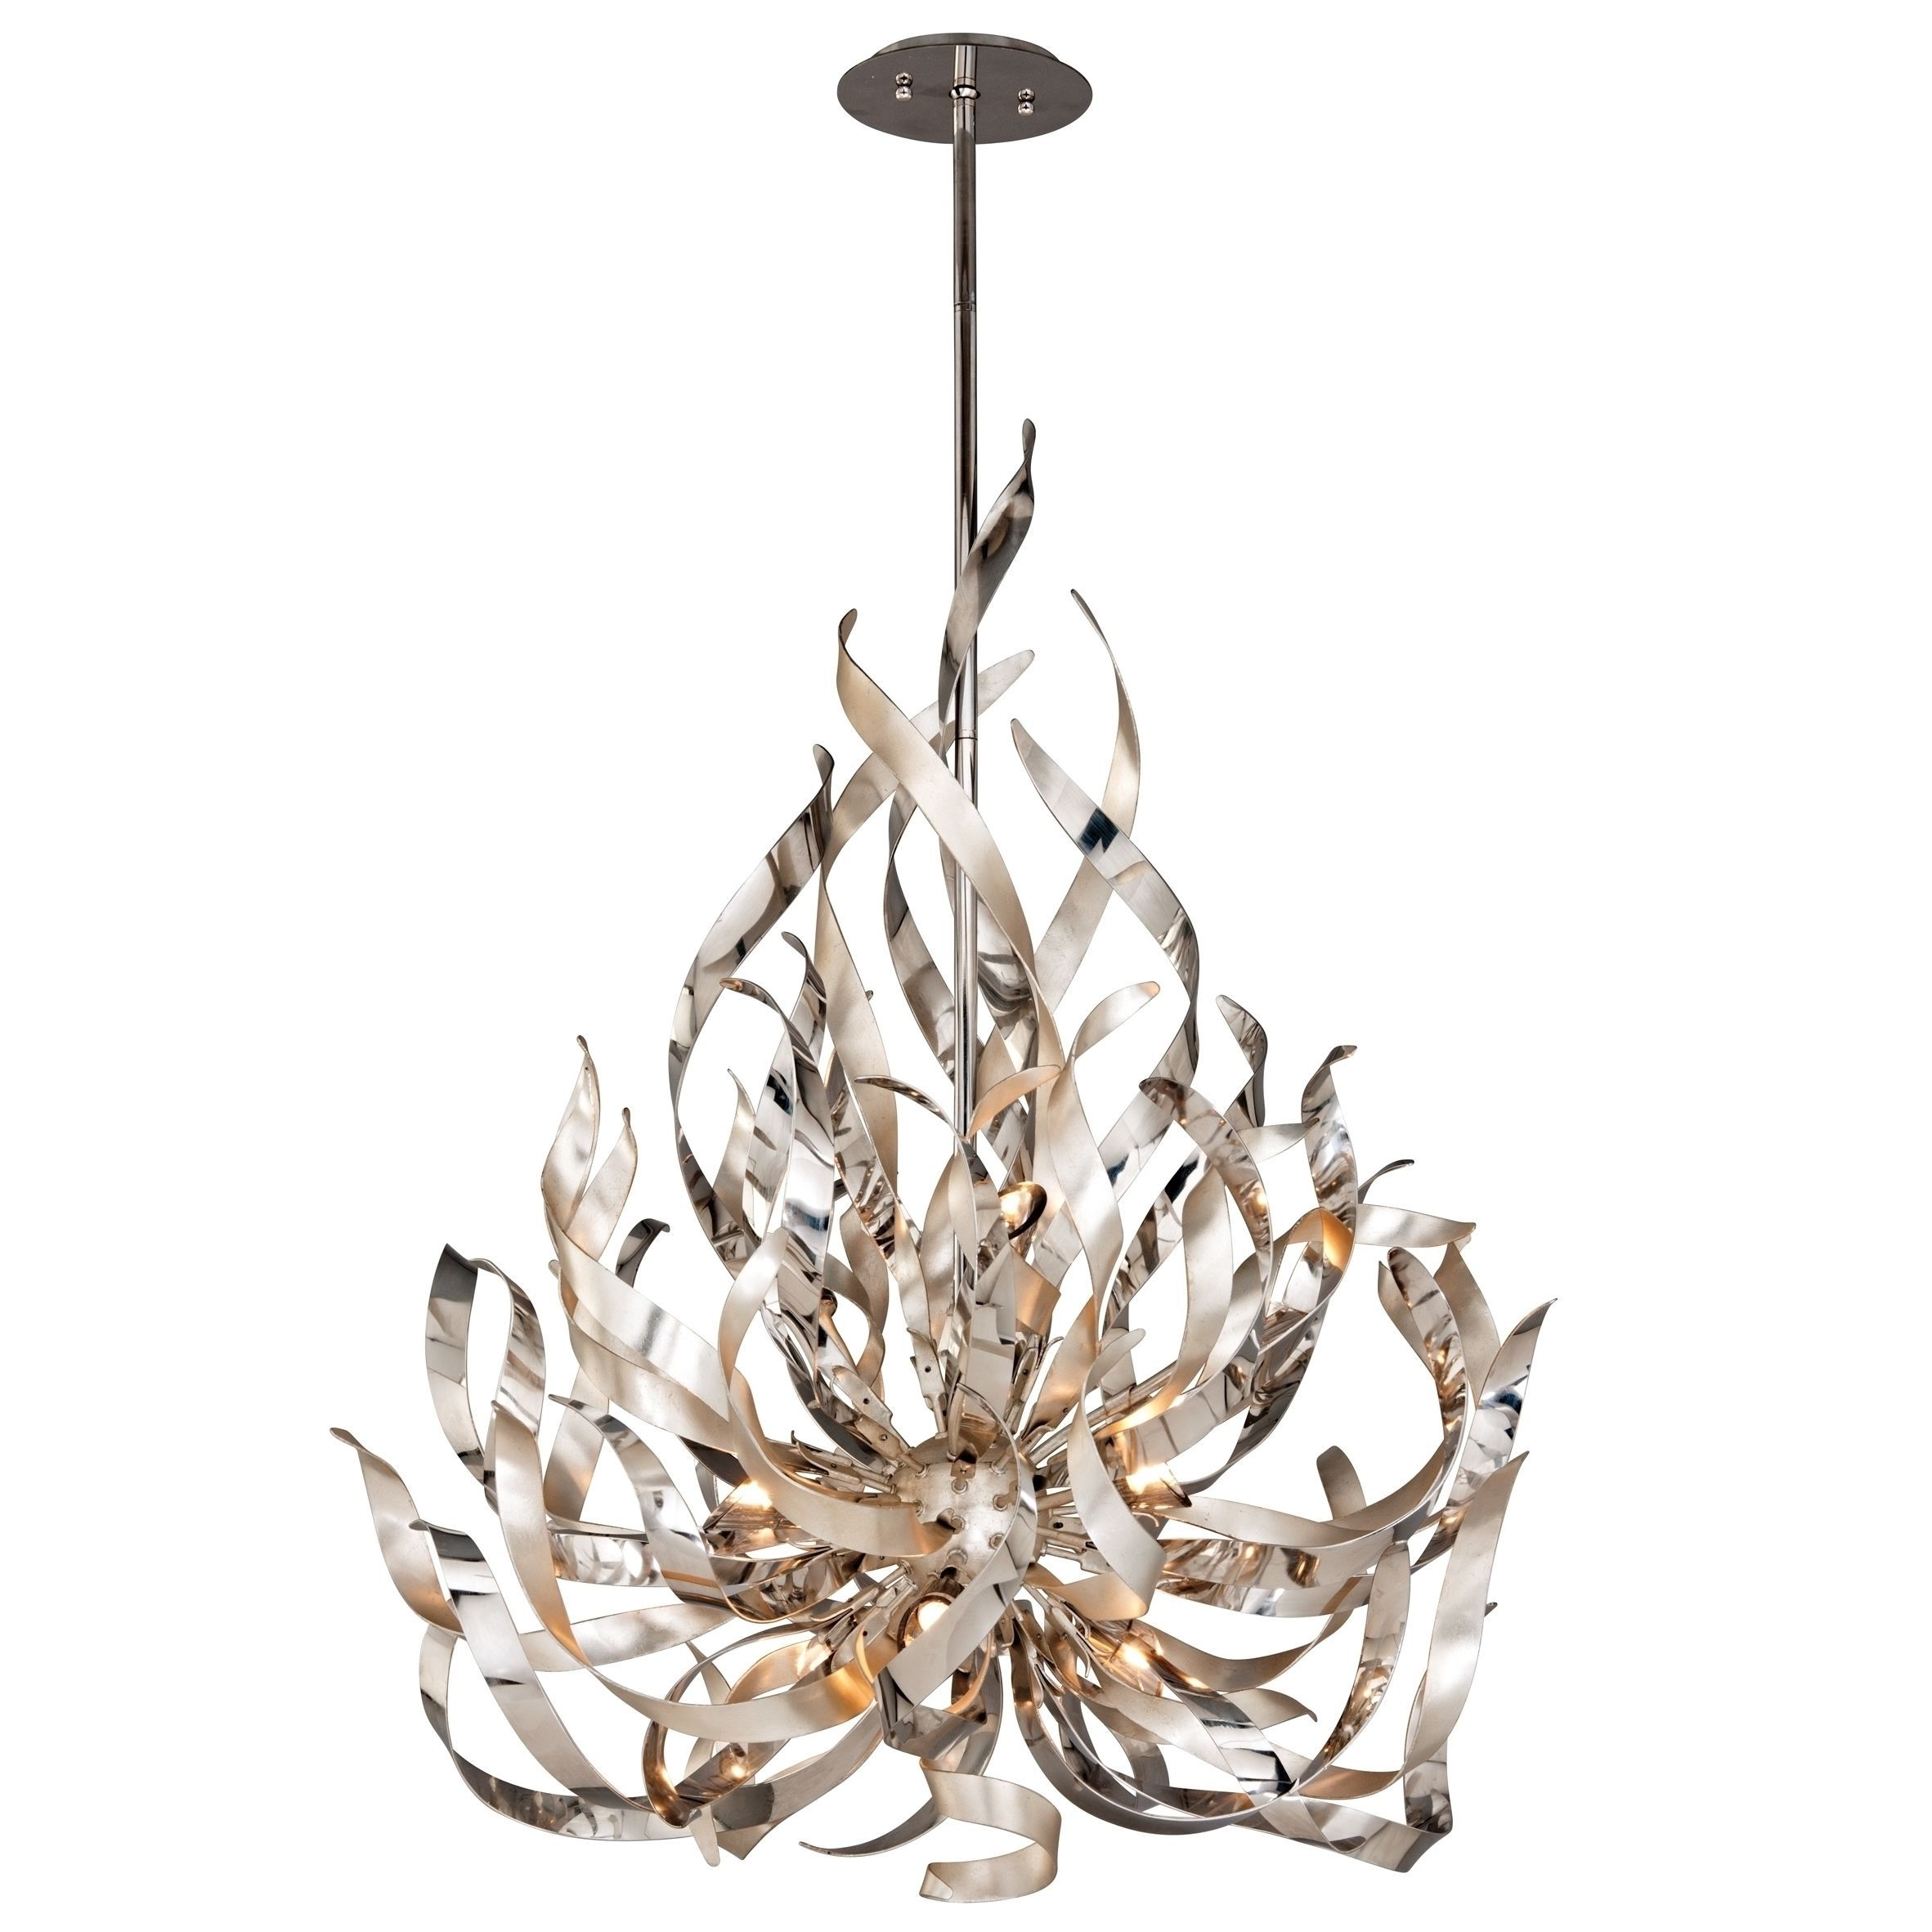 The Graffiti 9 light Chandelier es in a silver leaf and